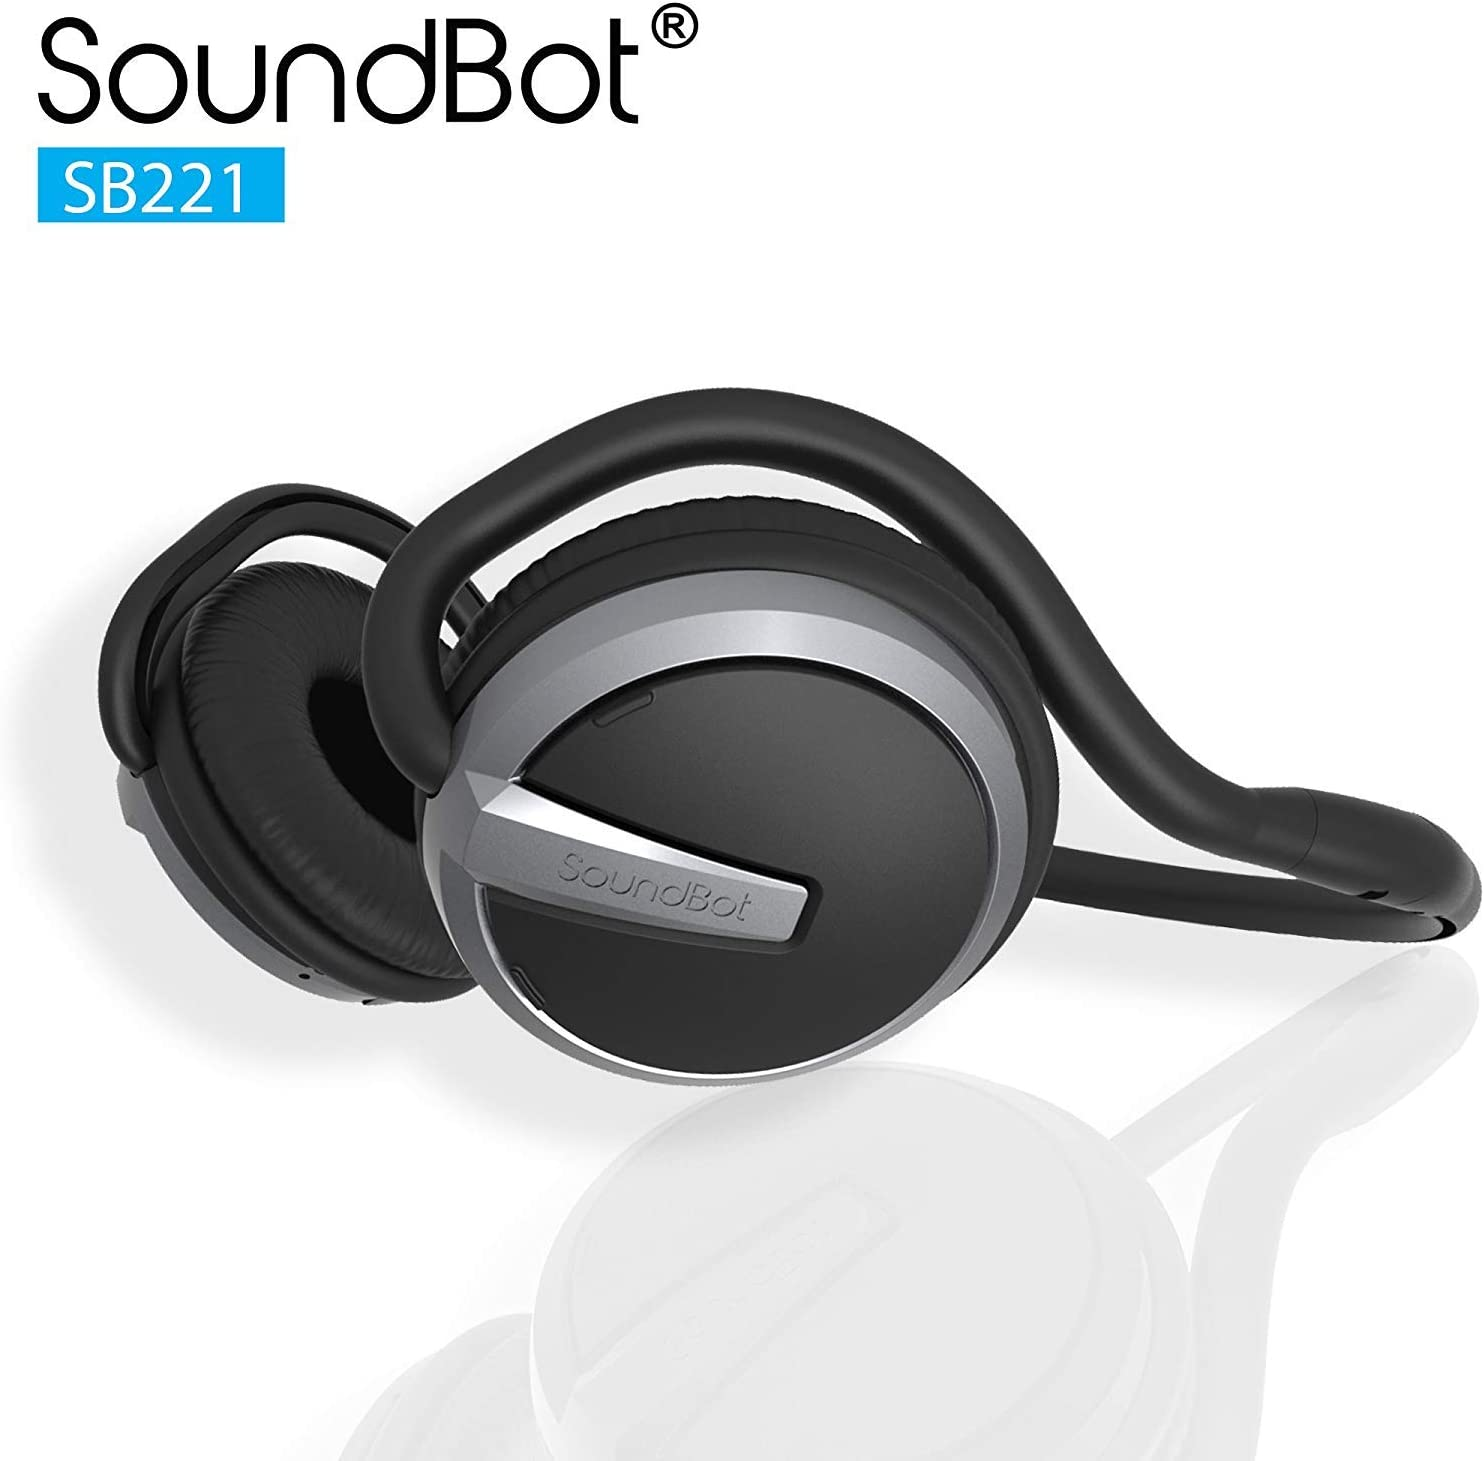 SoundBot¨ SB221 HD Noise cancelling headphones for small heads This one is the amazing Headphones For the small head and one of the best headphones for the song